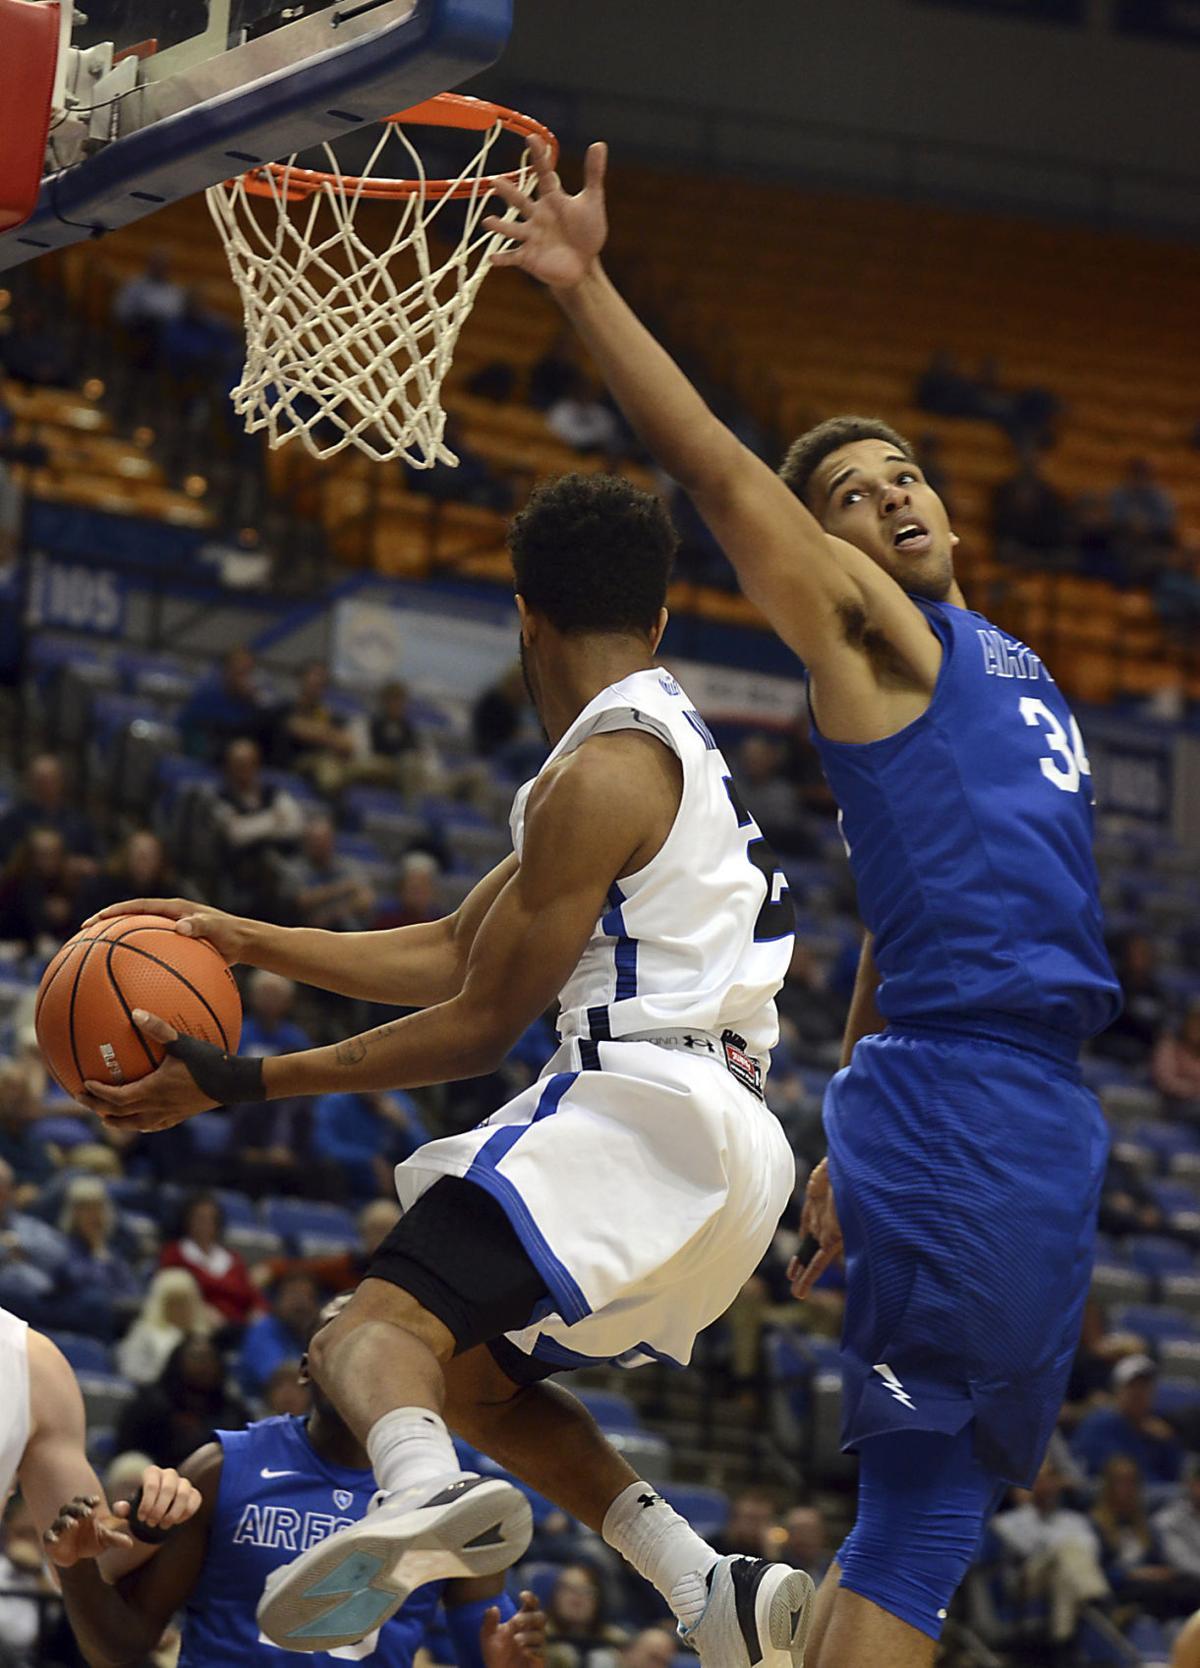 Air Force Indiana St Basketball